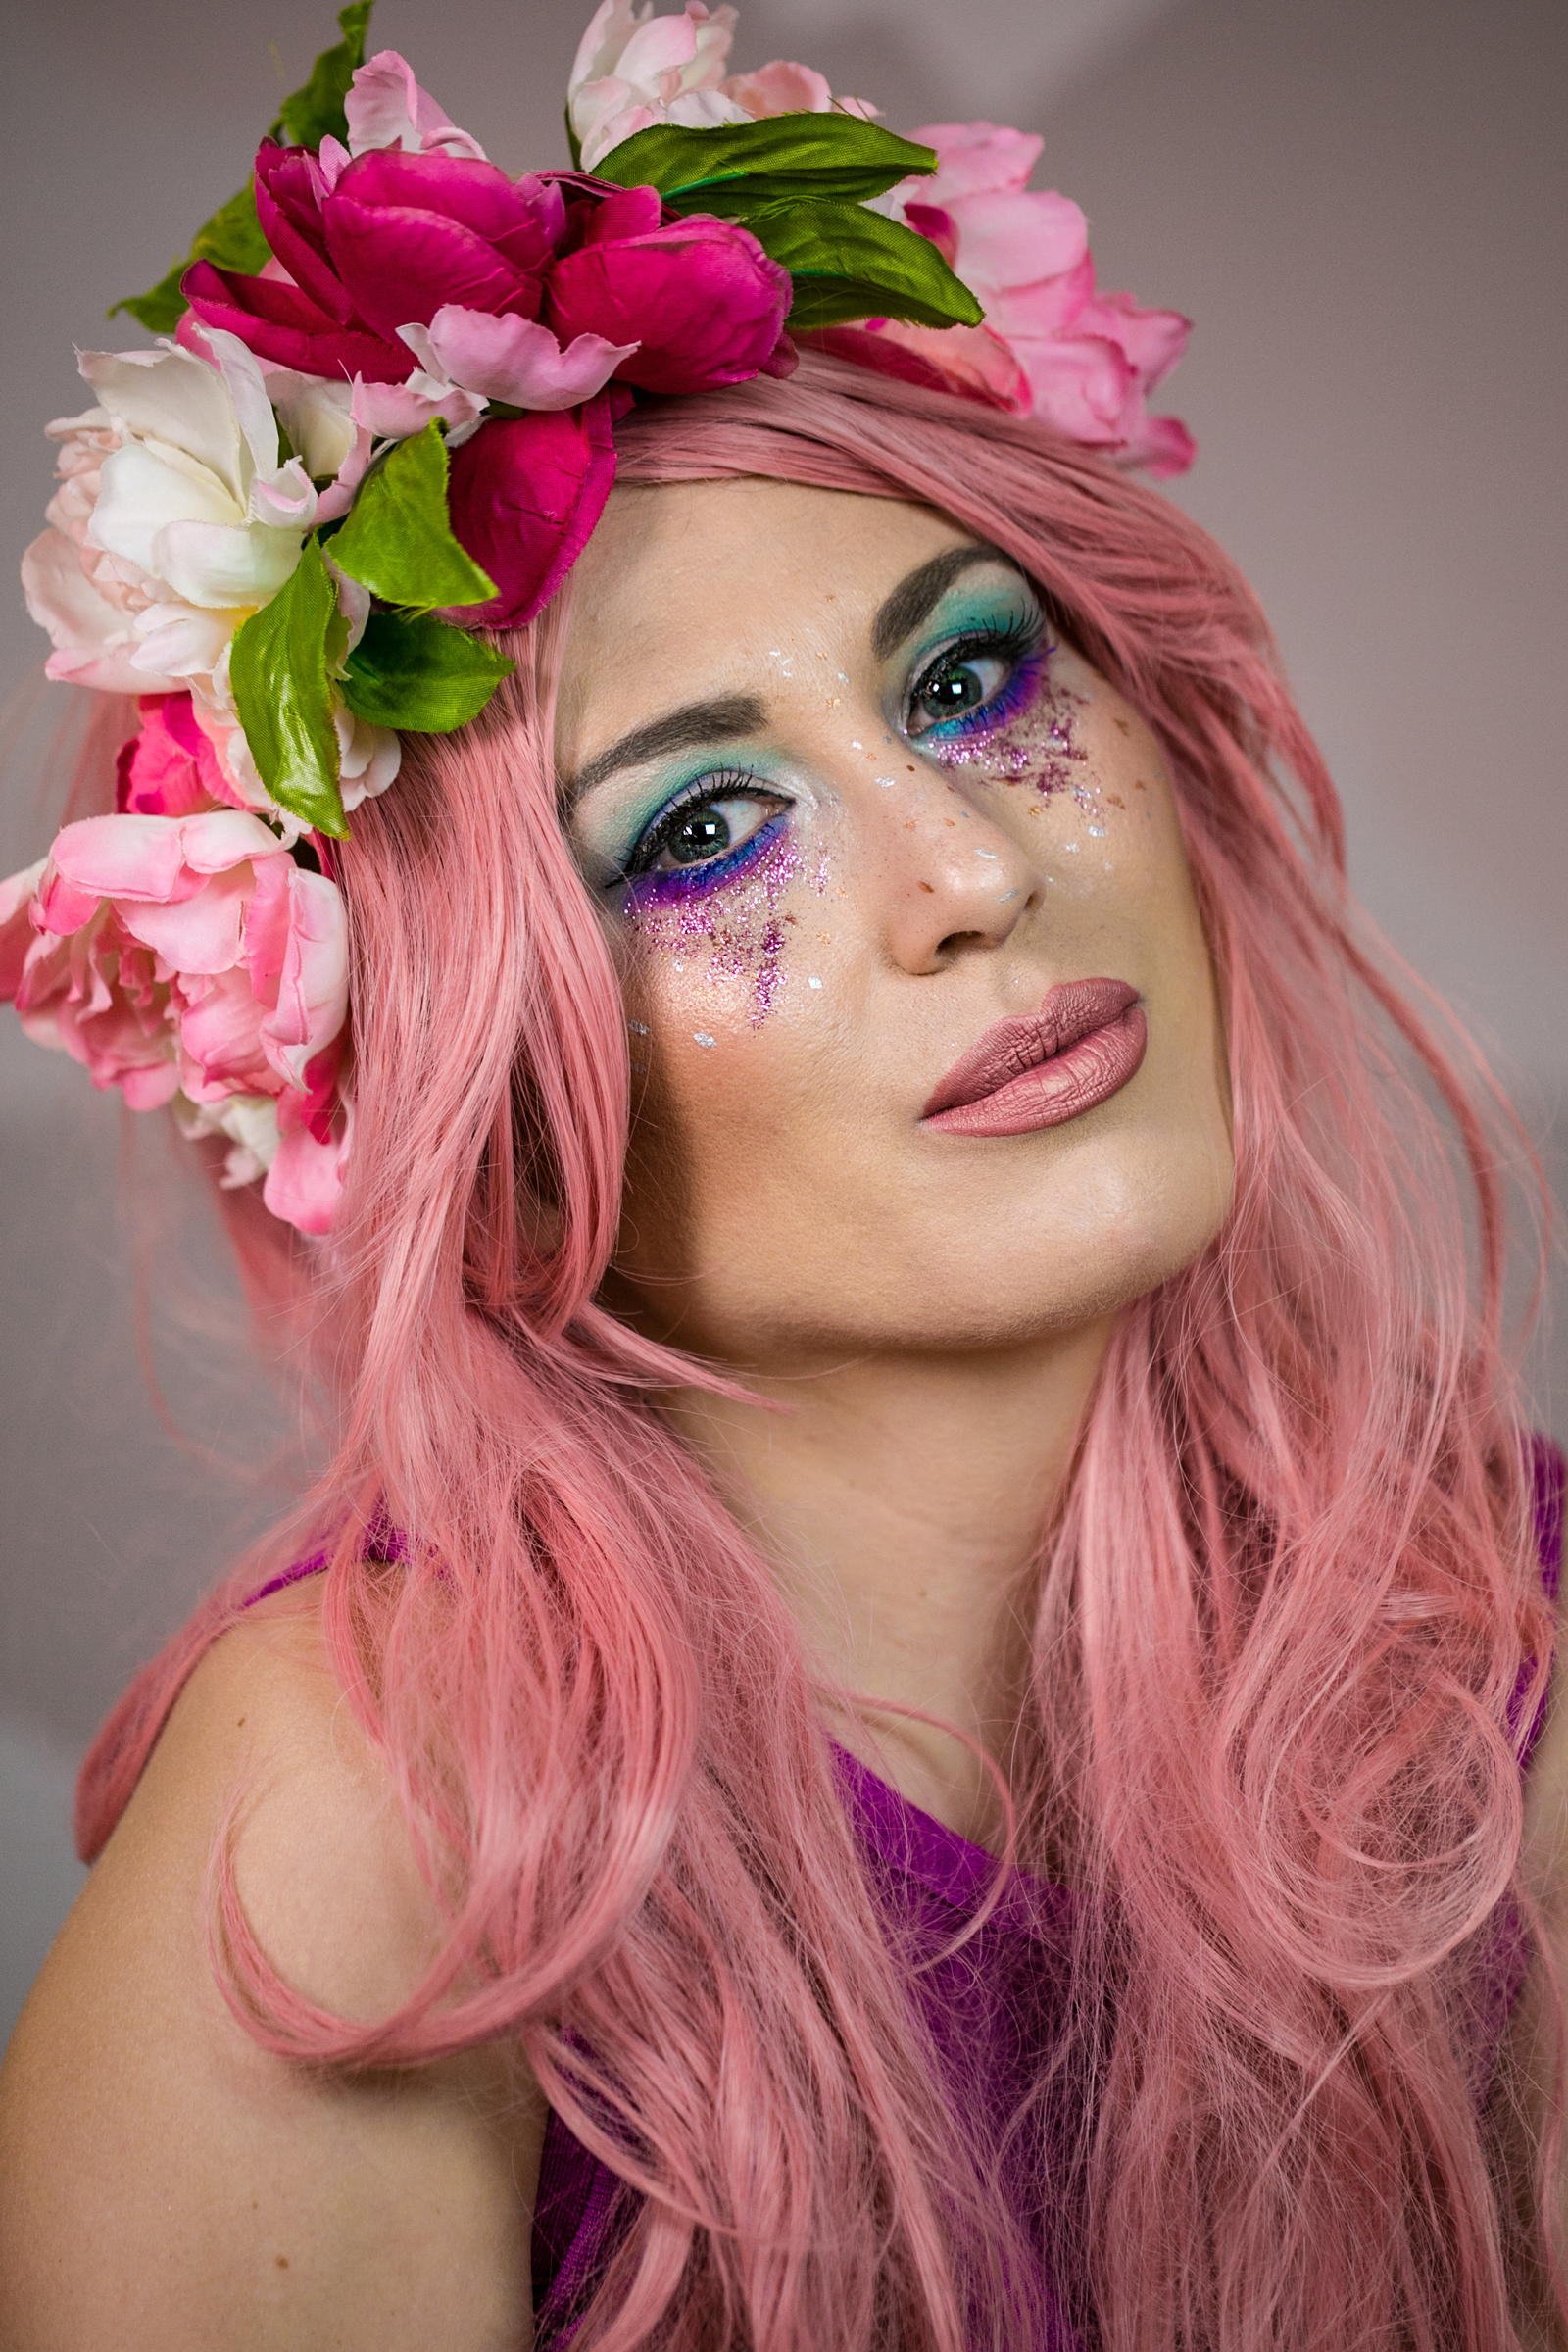 1600-shooting-nadja-nemetz-nadjanemetz-beauty-vienna-blogger-austrianblogger-violet-fleur-violetfleur-beautyblogger-NYXCosmeticsFaceAwards-NYX-NYXCosmetics-FaceAwards-FaceAwards2018-makeuplover-nmphe-glitter-flowercrown-1